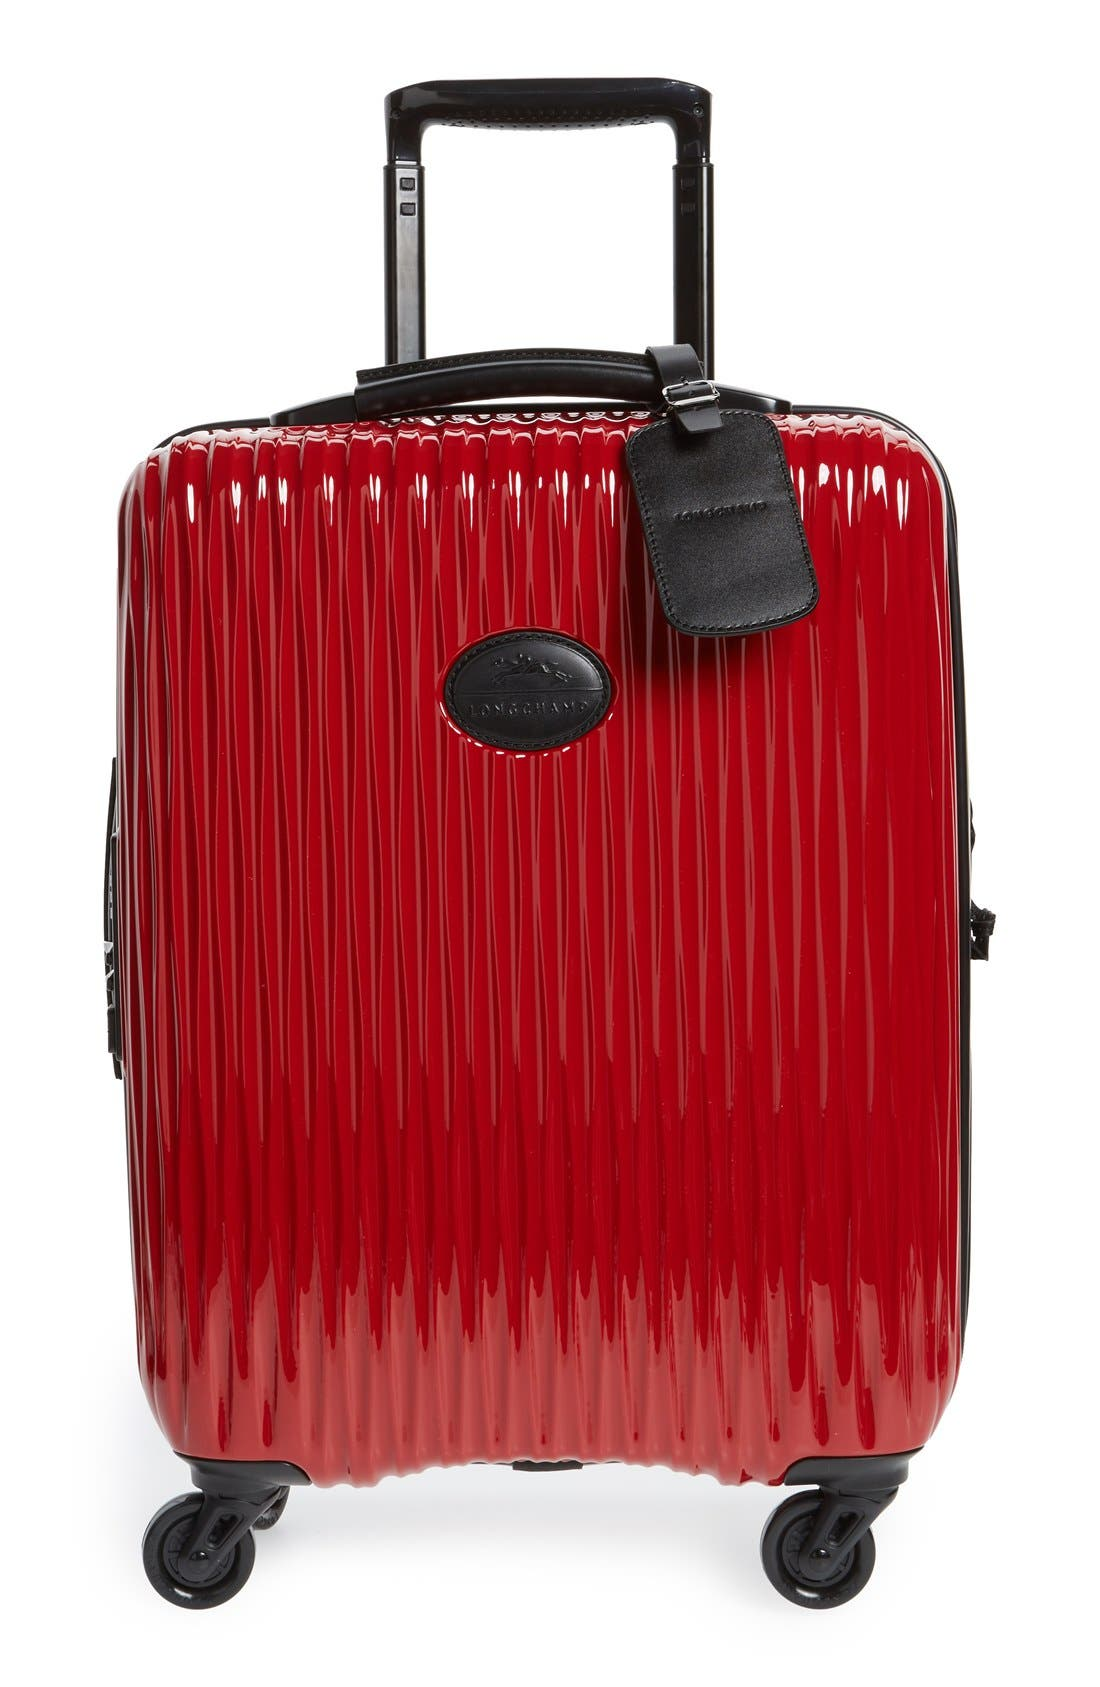 Alternate Image 1 Selected - Longchamp 'Fairval' Four-Wheeled Hard Shell Suitcase (22 Inch)